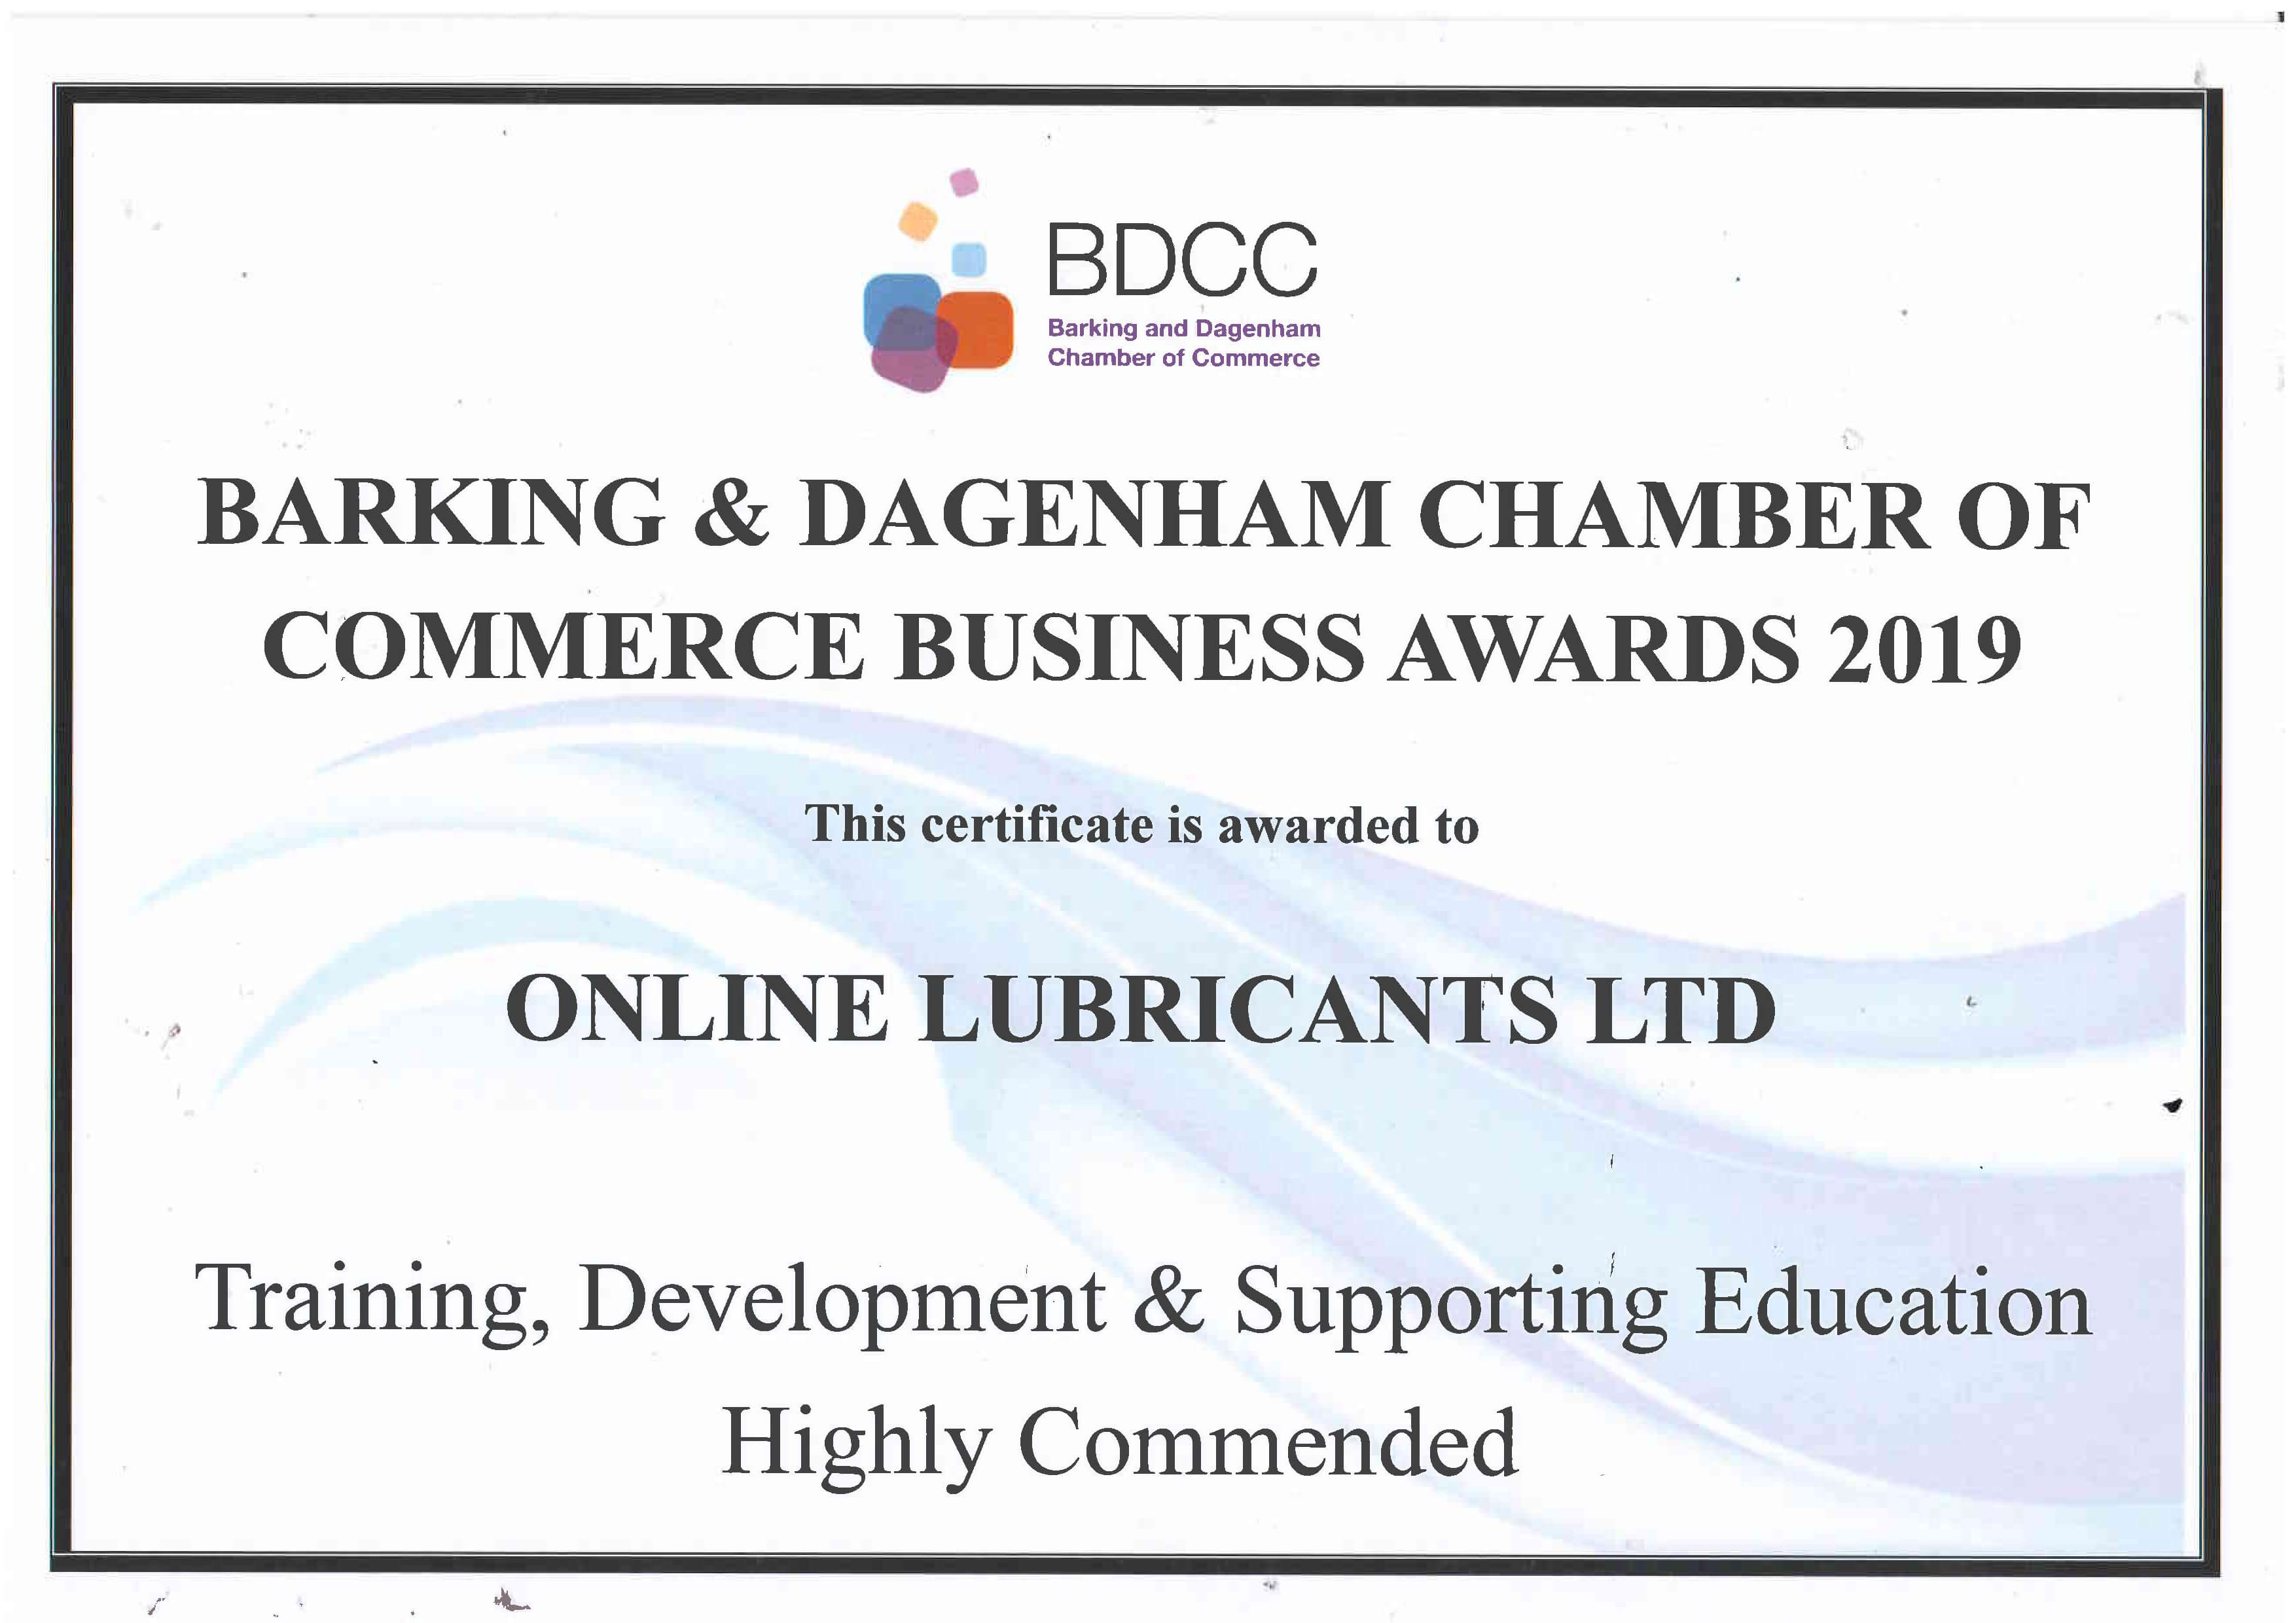 Certificate for Training, Development & Supporting Education - Online Lubricants